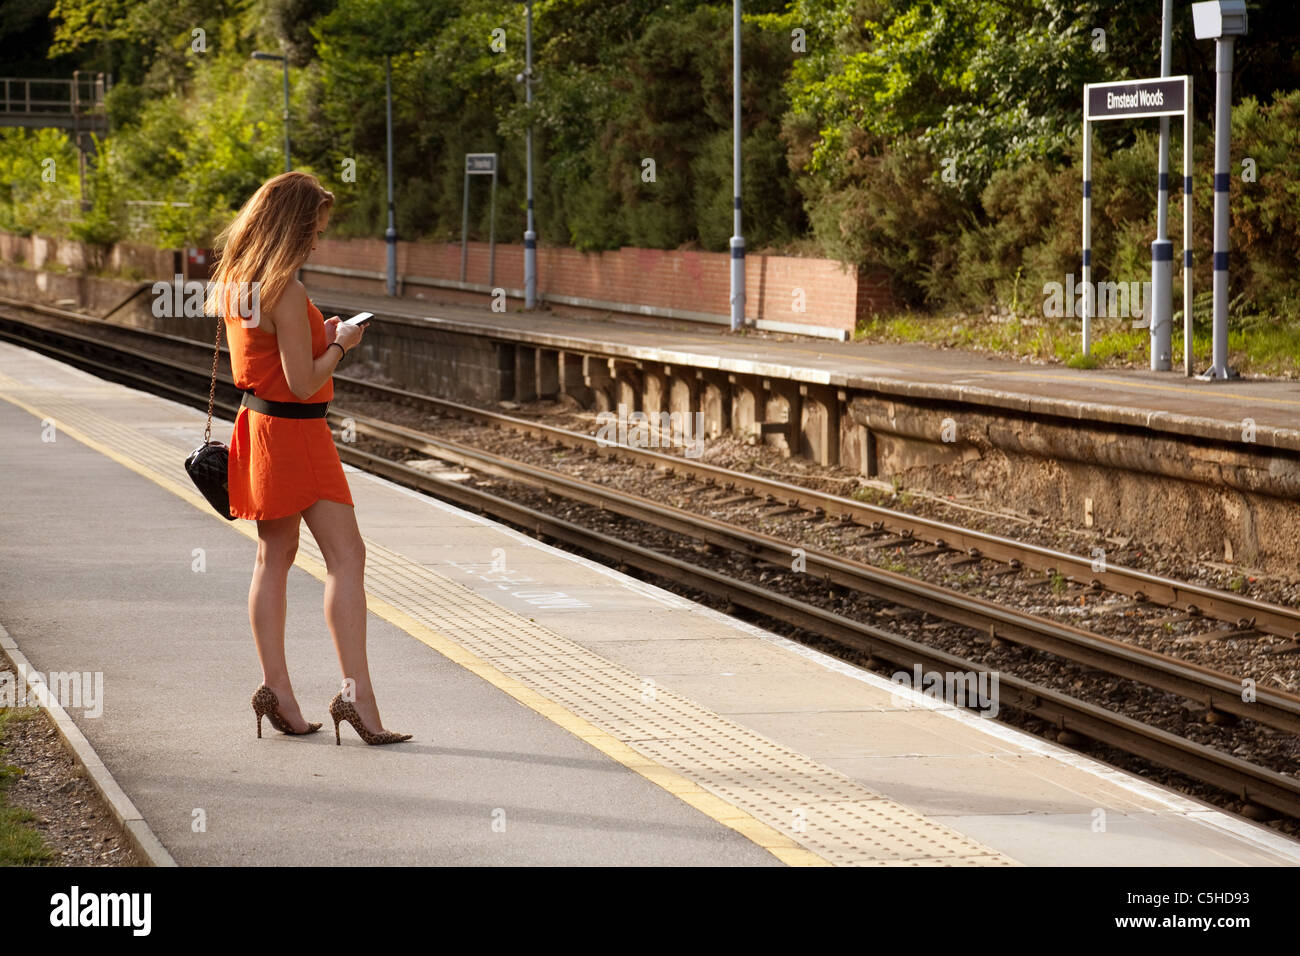 Young woman waiting for a train, Elmstead Woods station, Southeastern trains, London UK - Stock Image